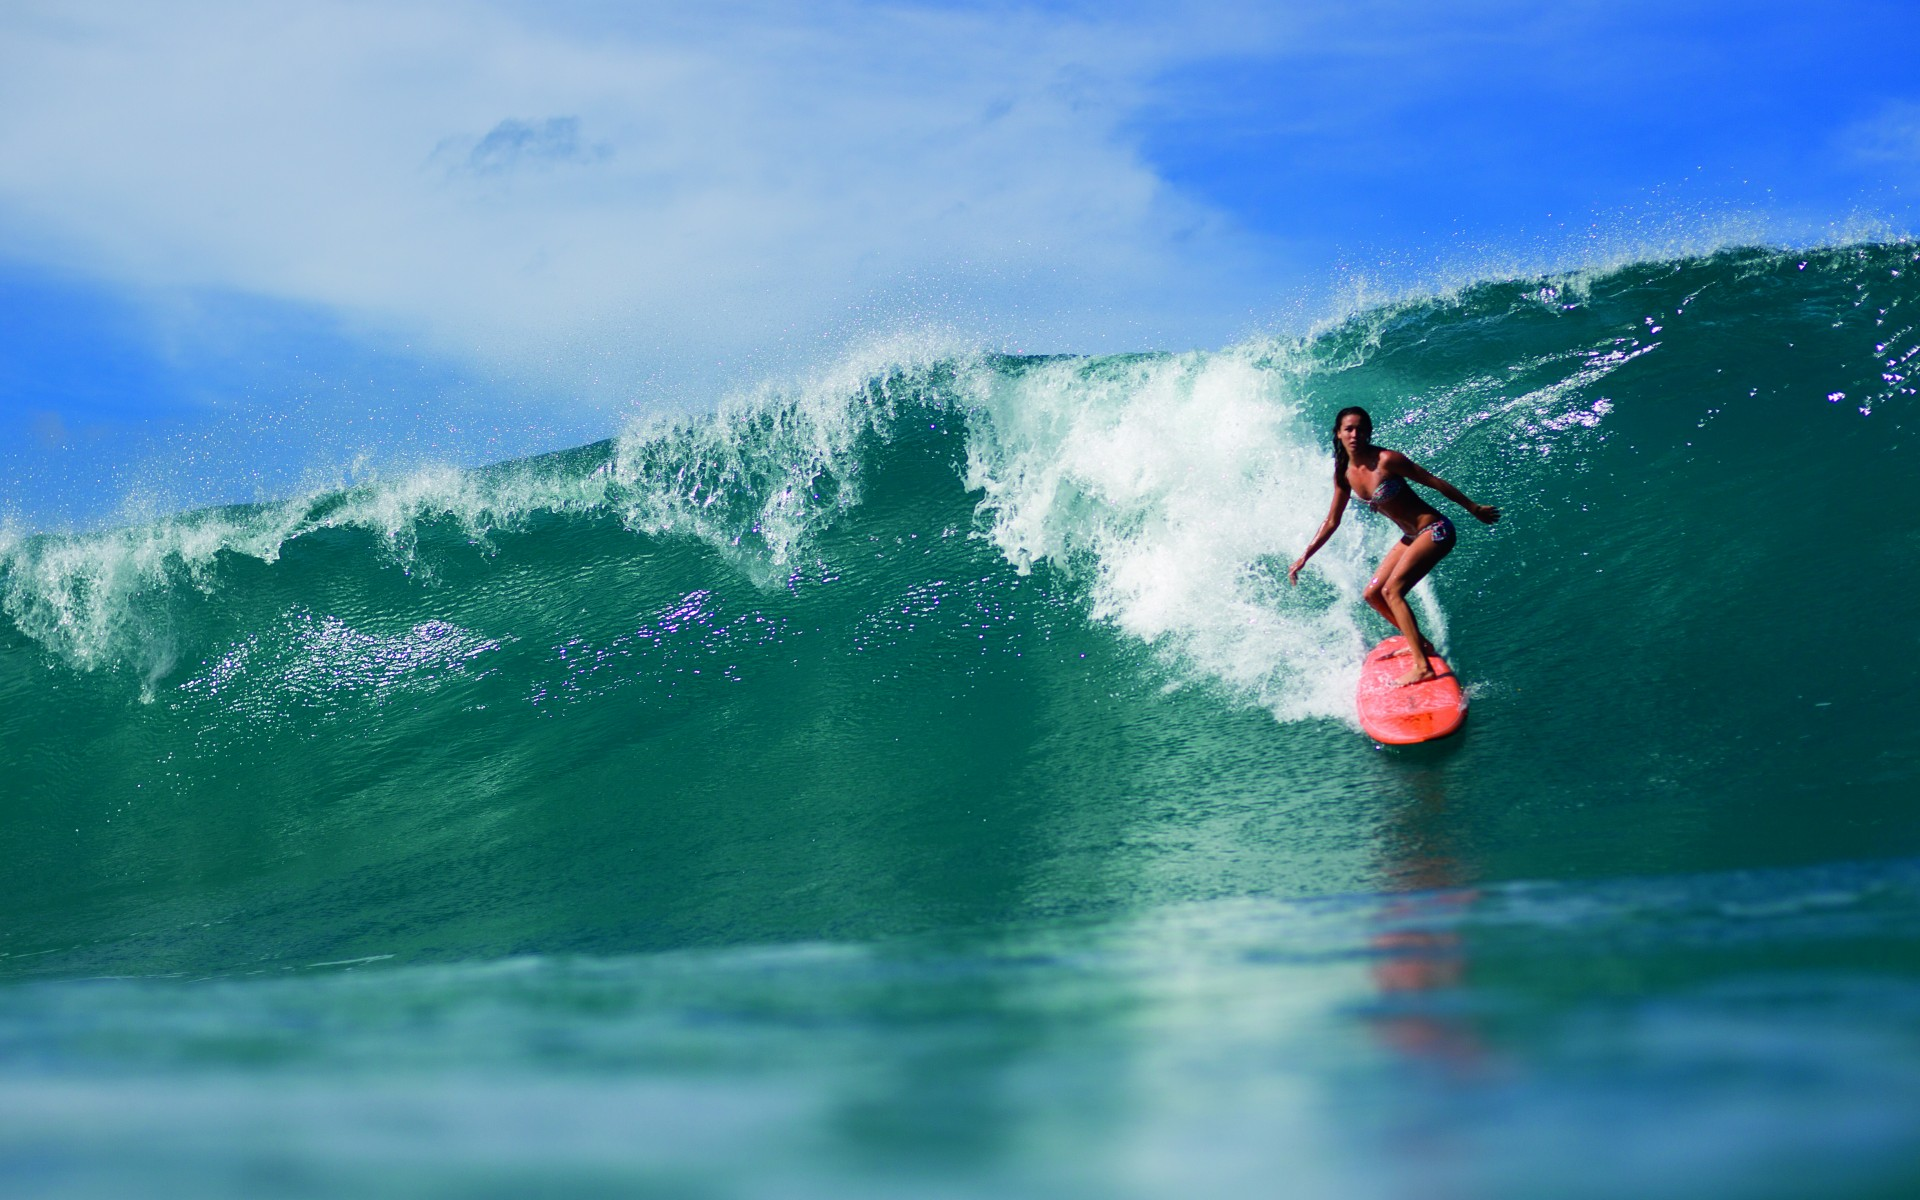 surfer girl desktop wallpaper 58688 1920x1080 px